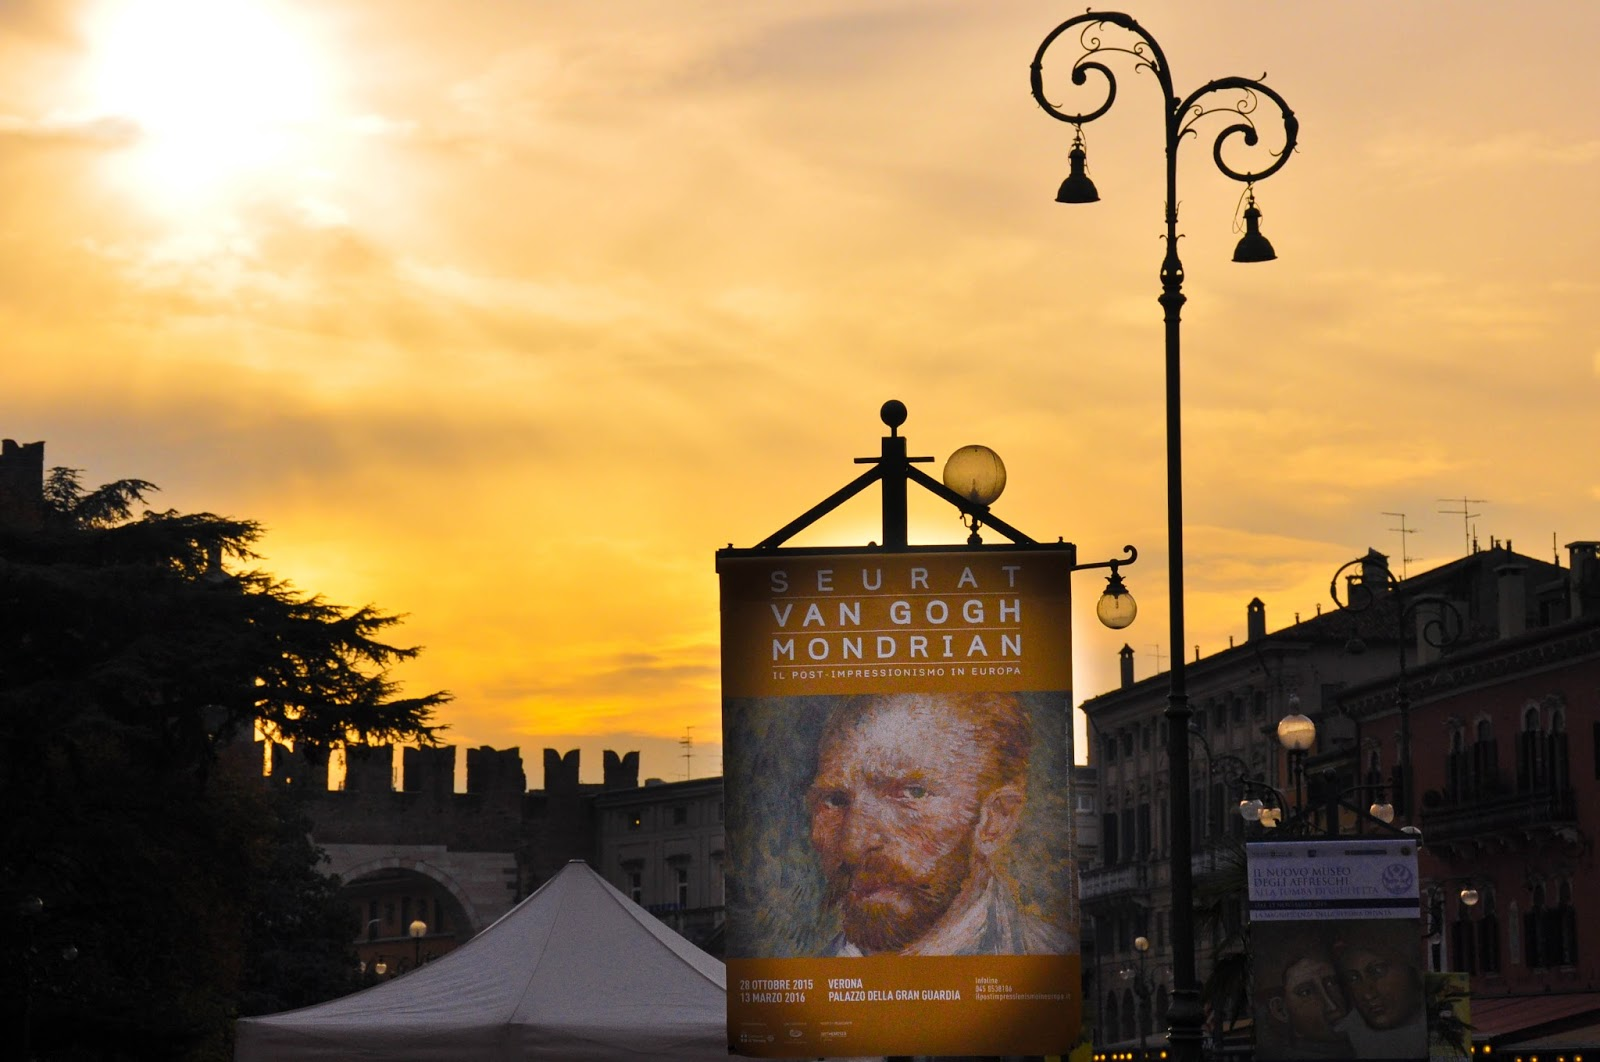 Under the impressionist sky; a poster for the Seurat, Van Gogh, Mondrian exhibition, Verona, Italy